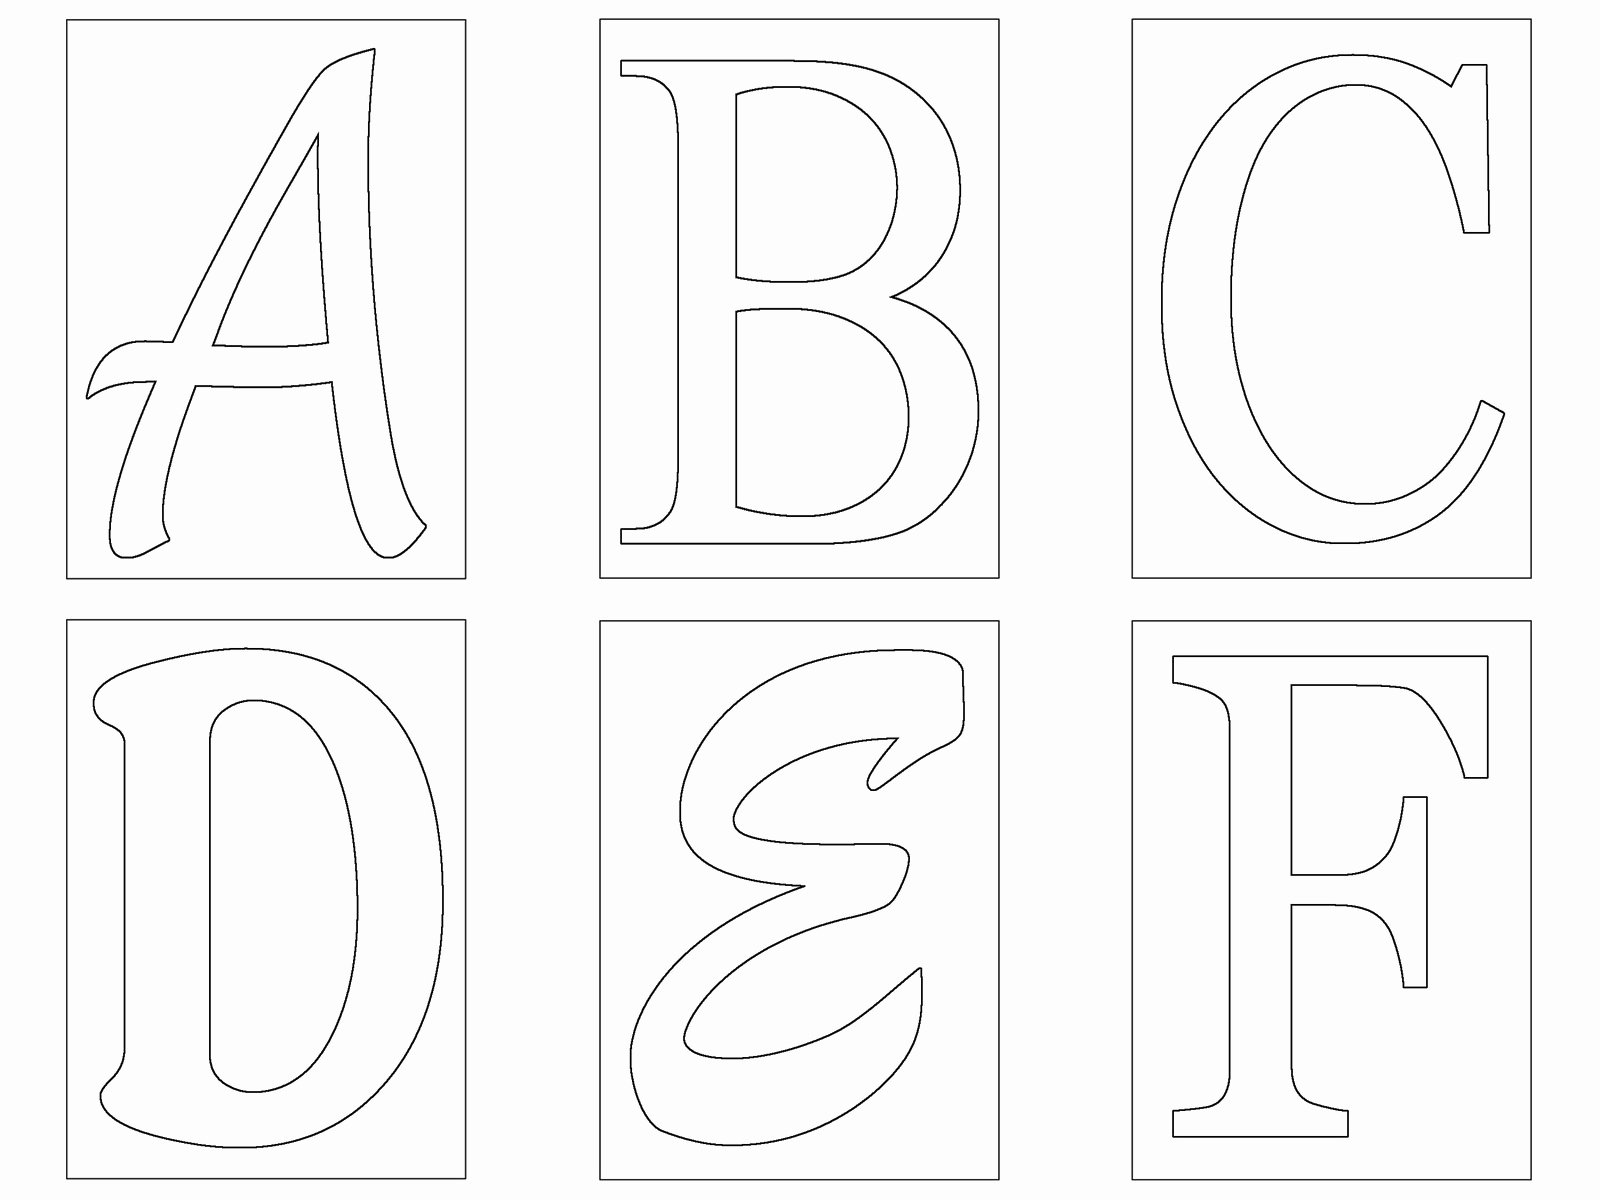 Free Printable Alphabet Templates Unique Letters Templates Cut Out – 28 – Alphabet Stencils